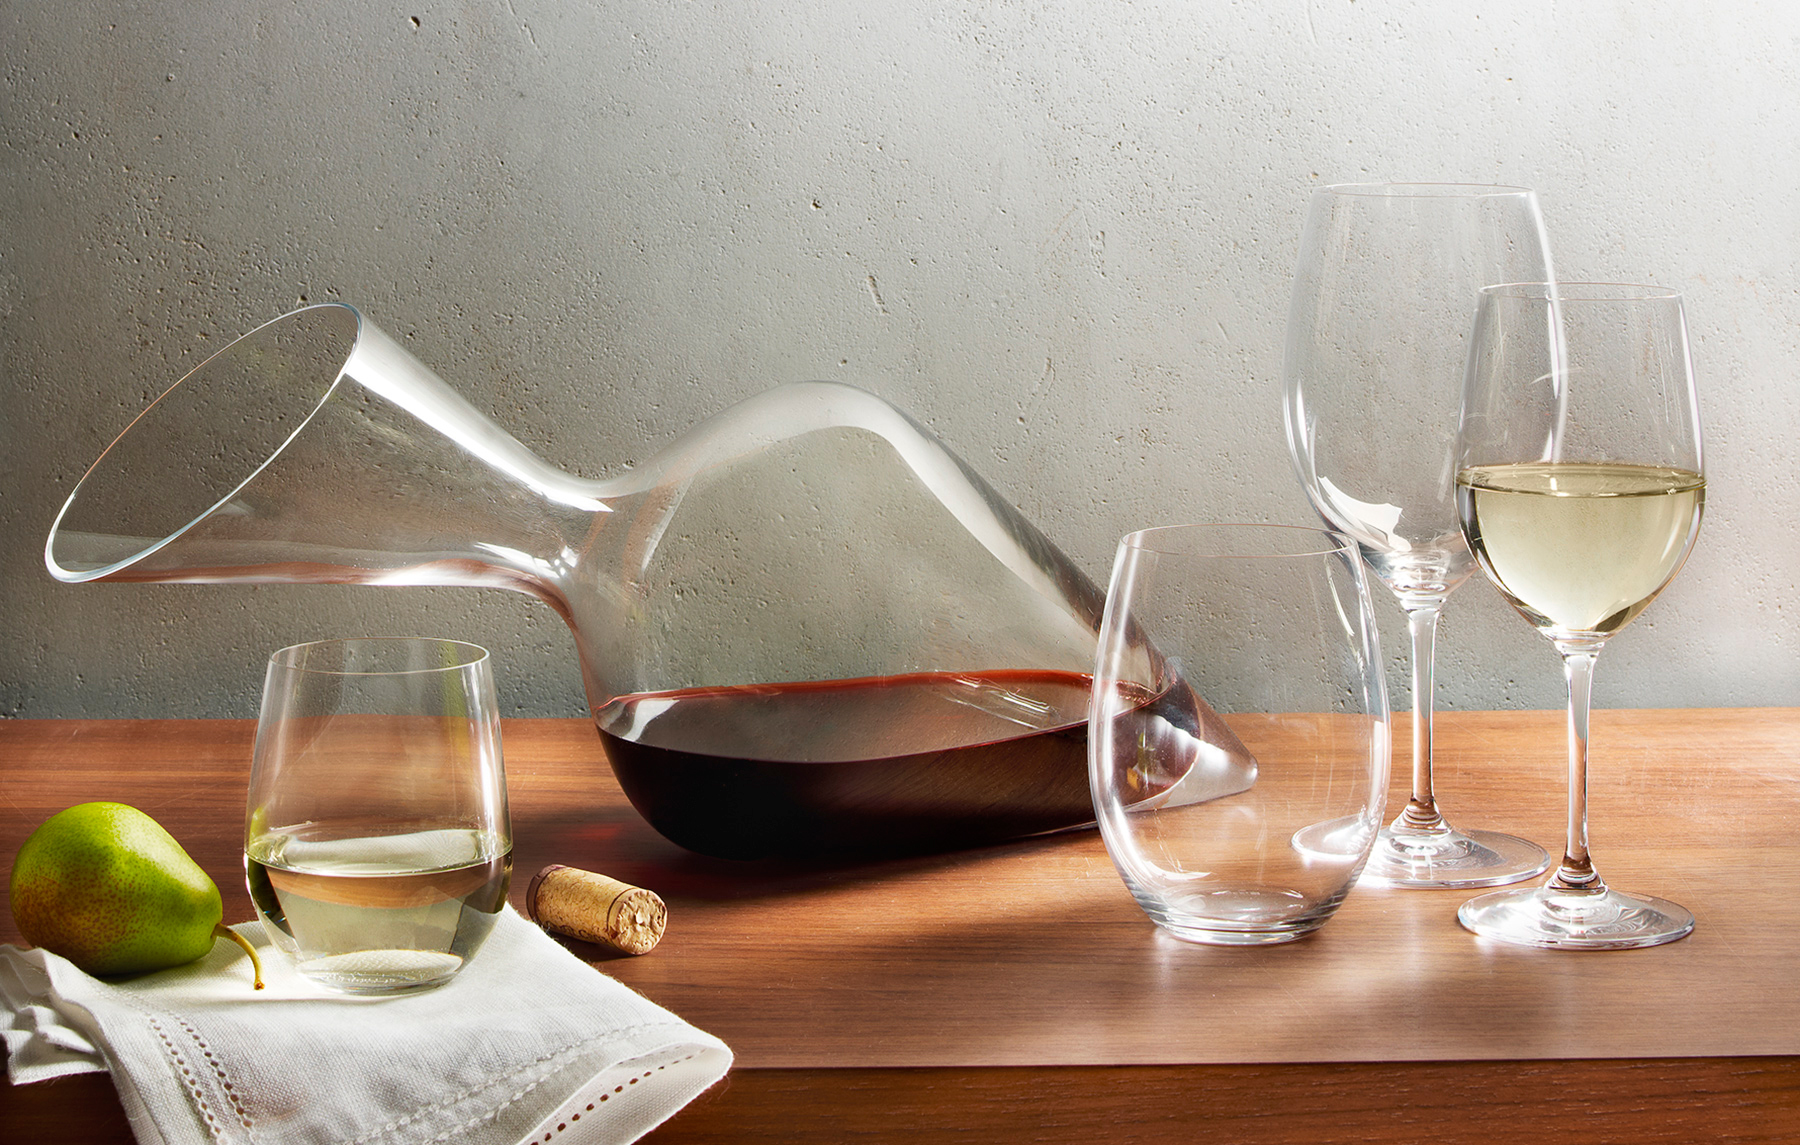 Wine glasses and decanter | Dovis Bird Agency